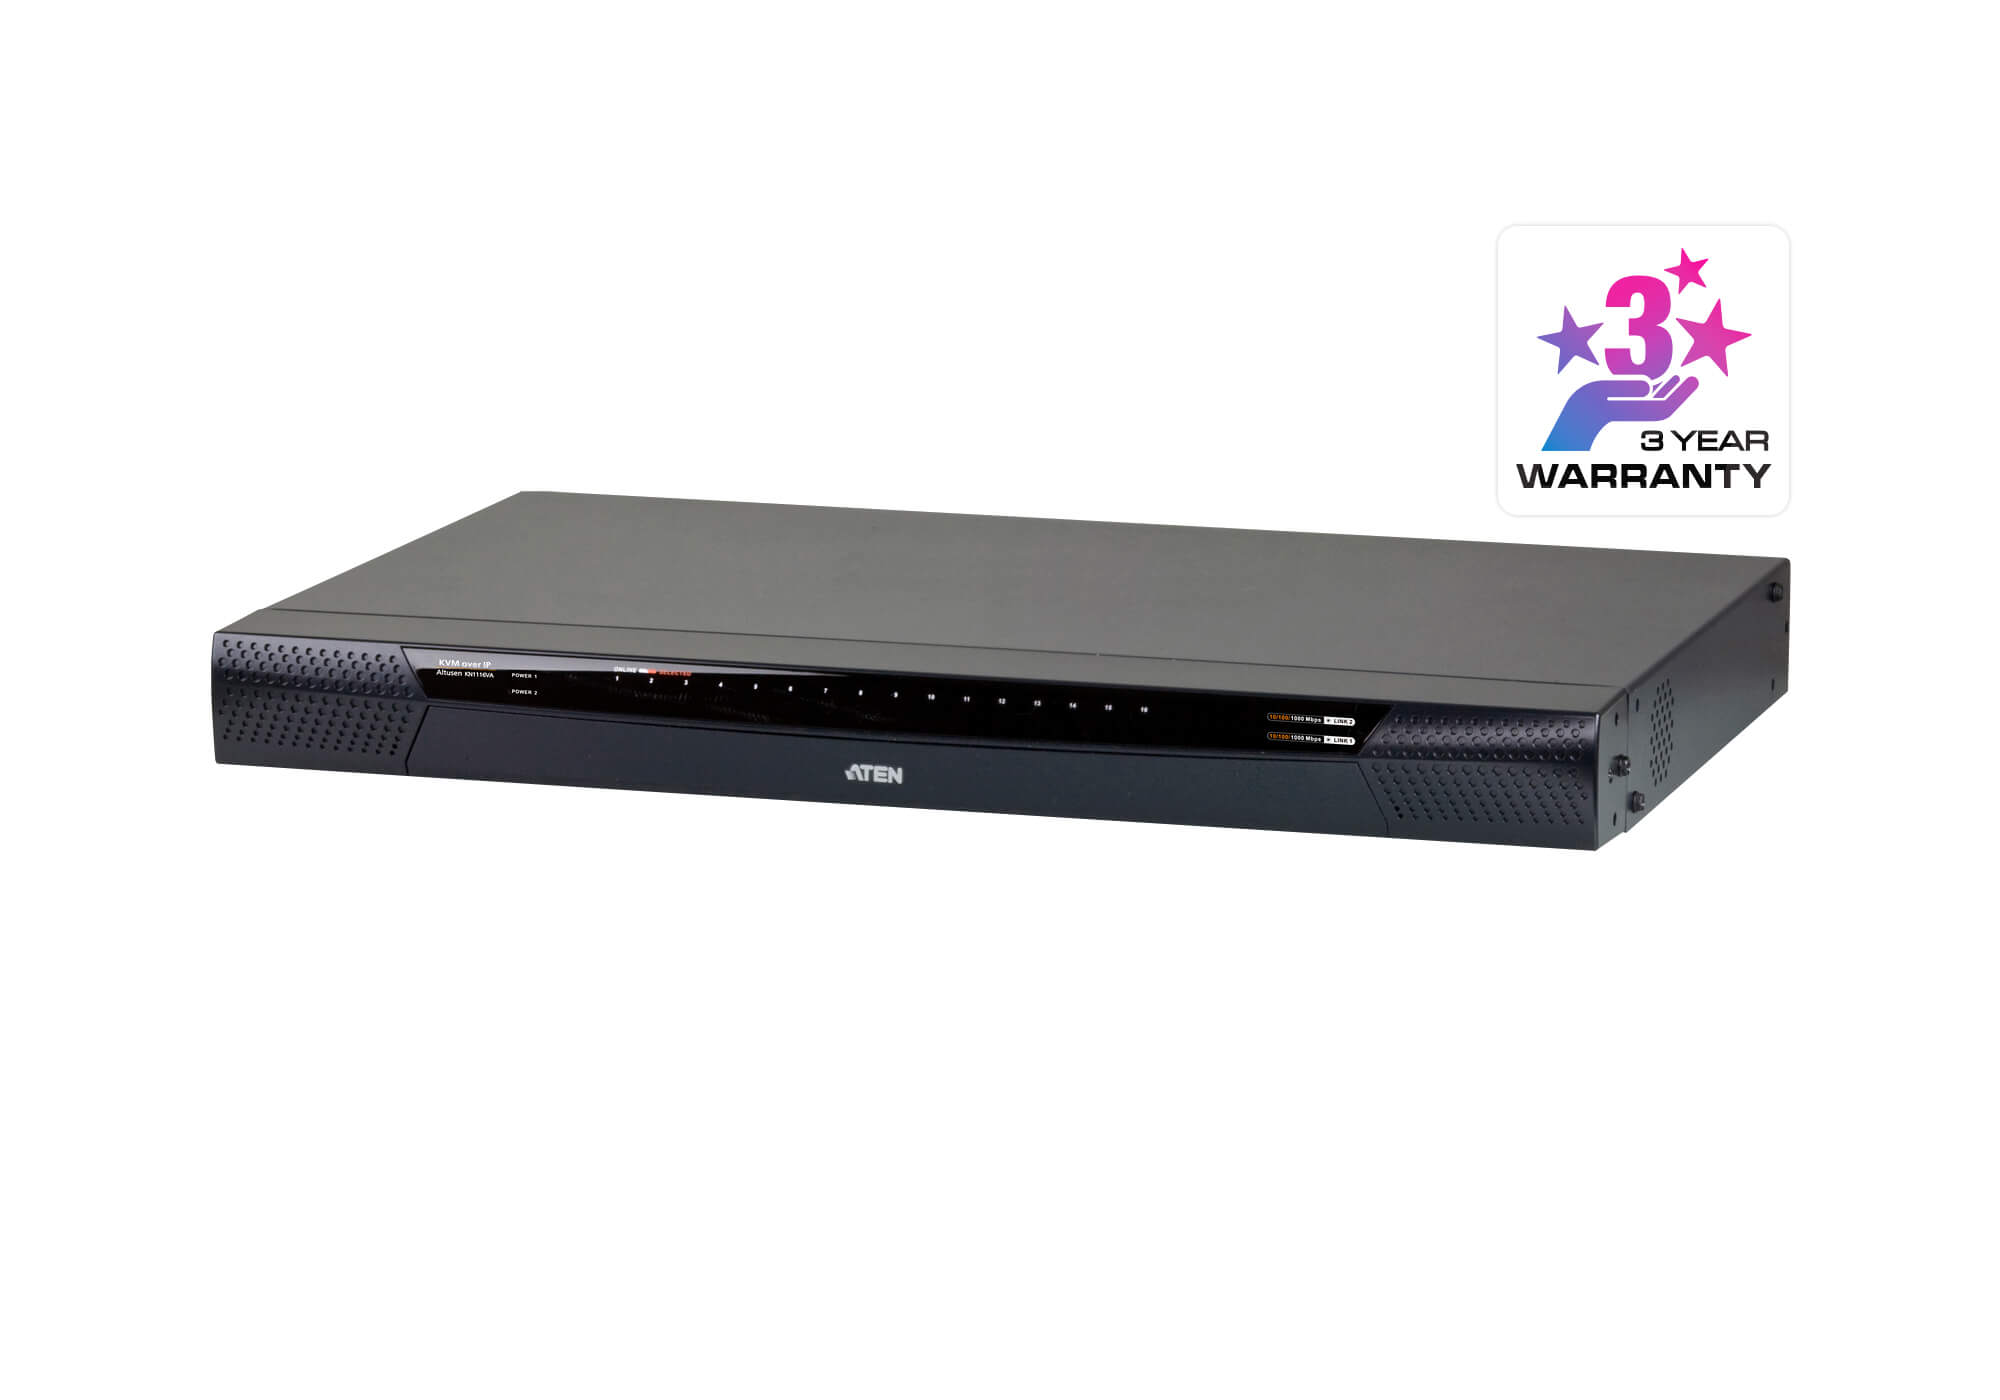 1 acesso local/1 remoto Switch KVM de 16 portas Cat 5 sobre IP com Suporte Virtual (1920 x 1200)-1